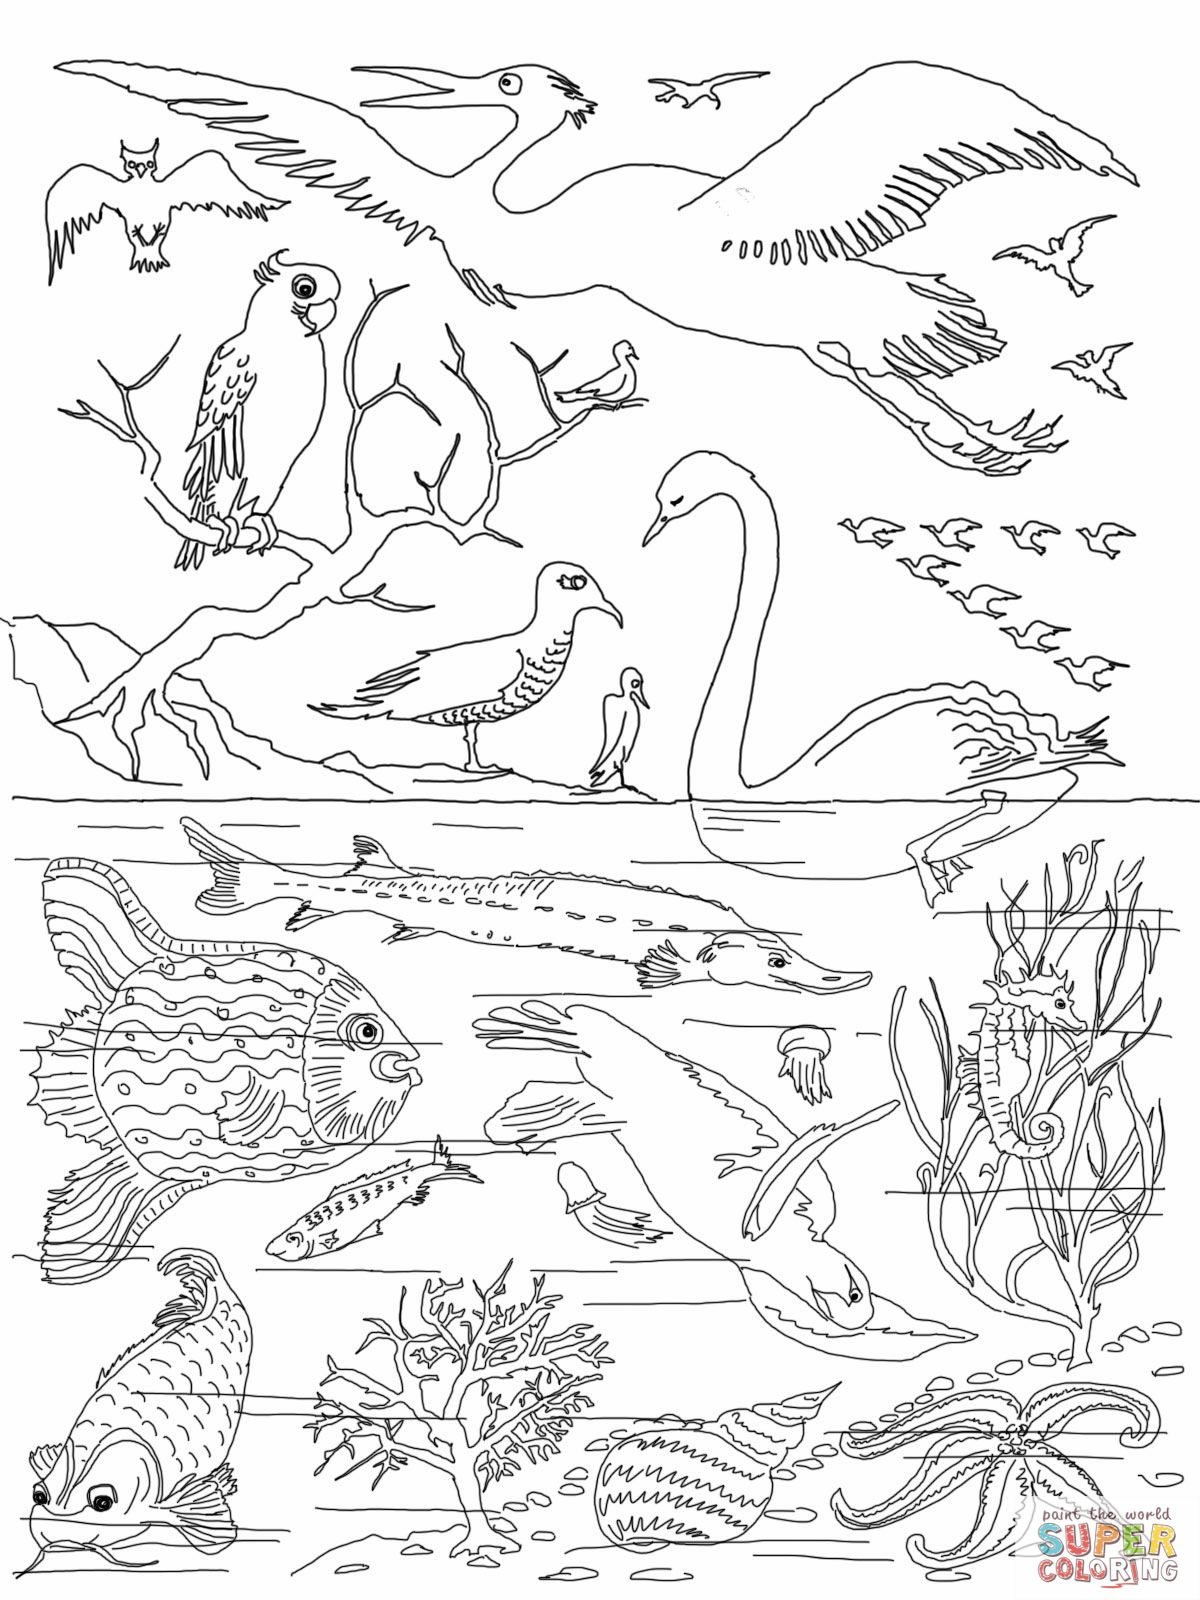 Creation - Days Coloring Page - SundaySchoolist